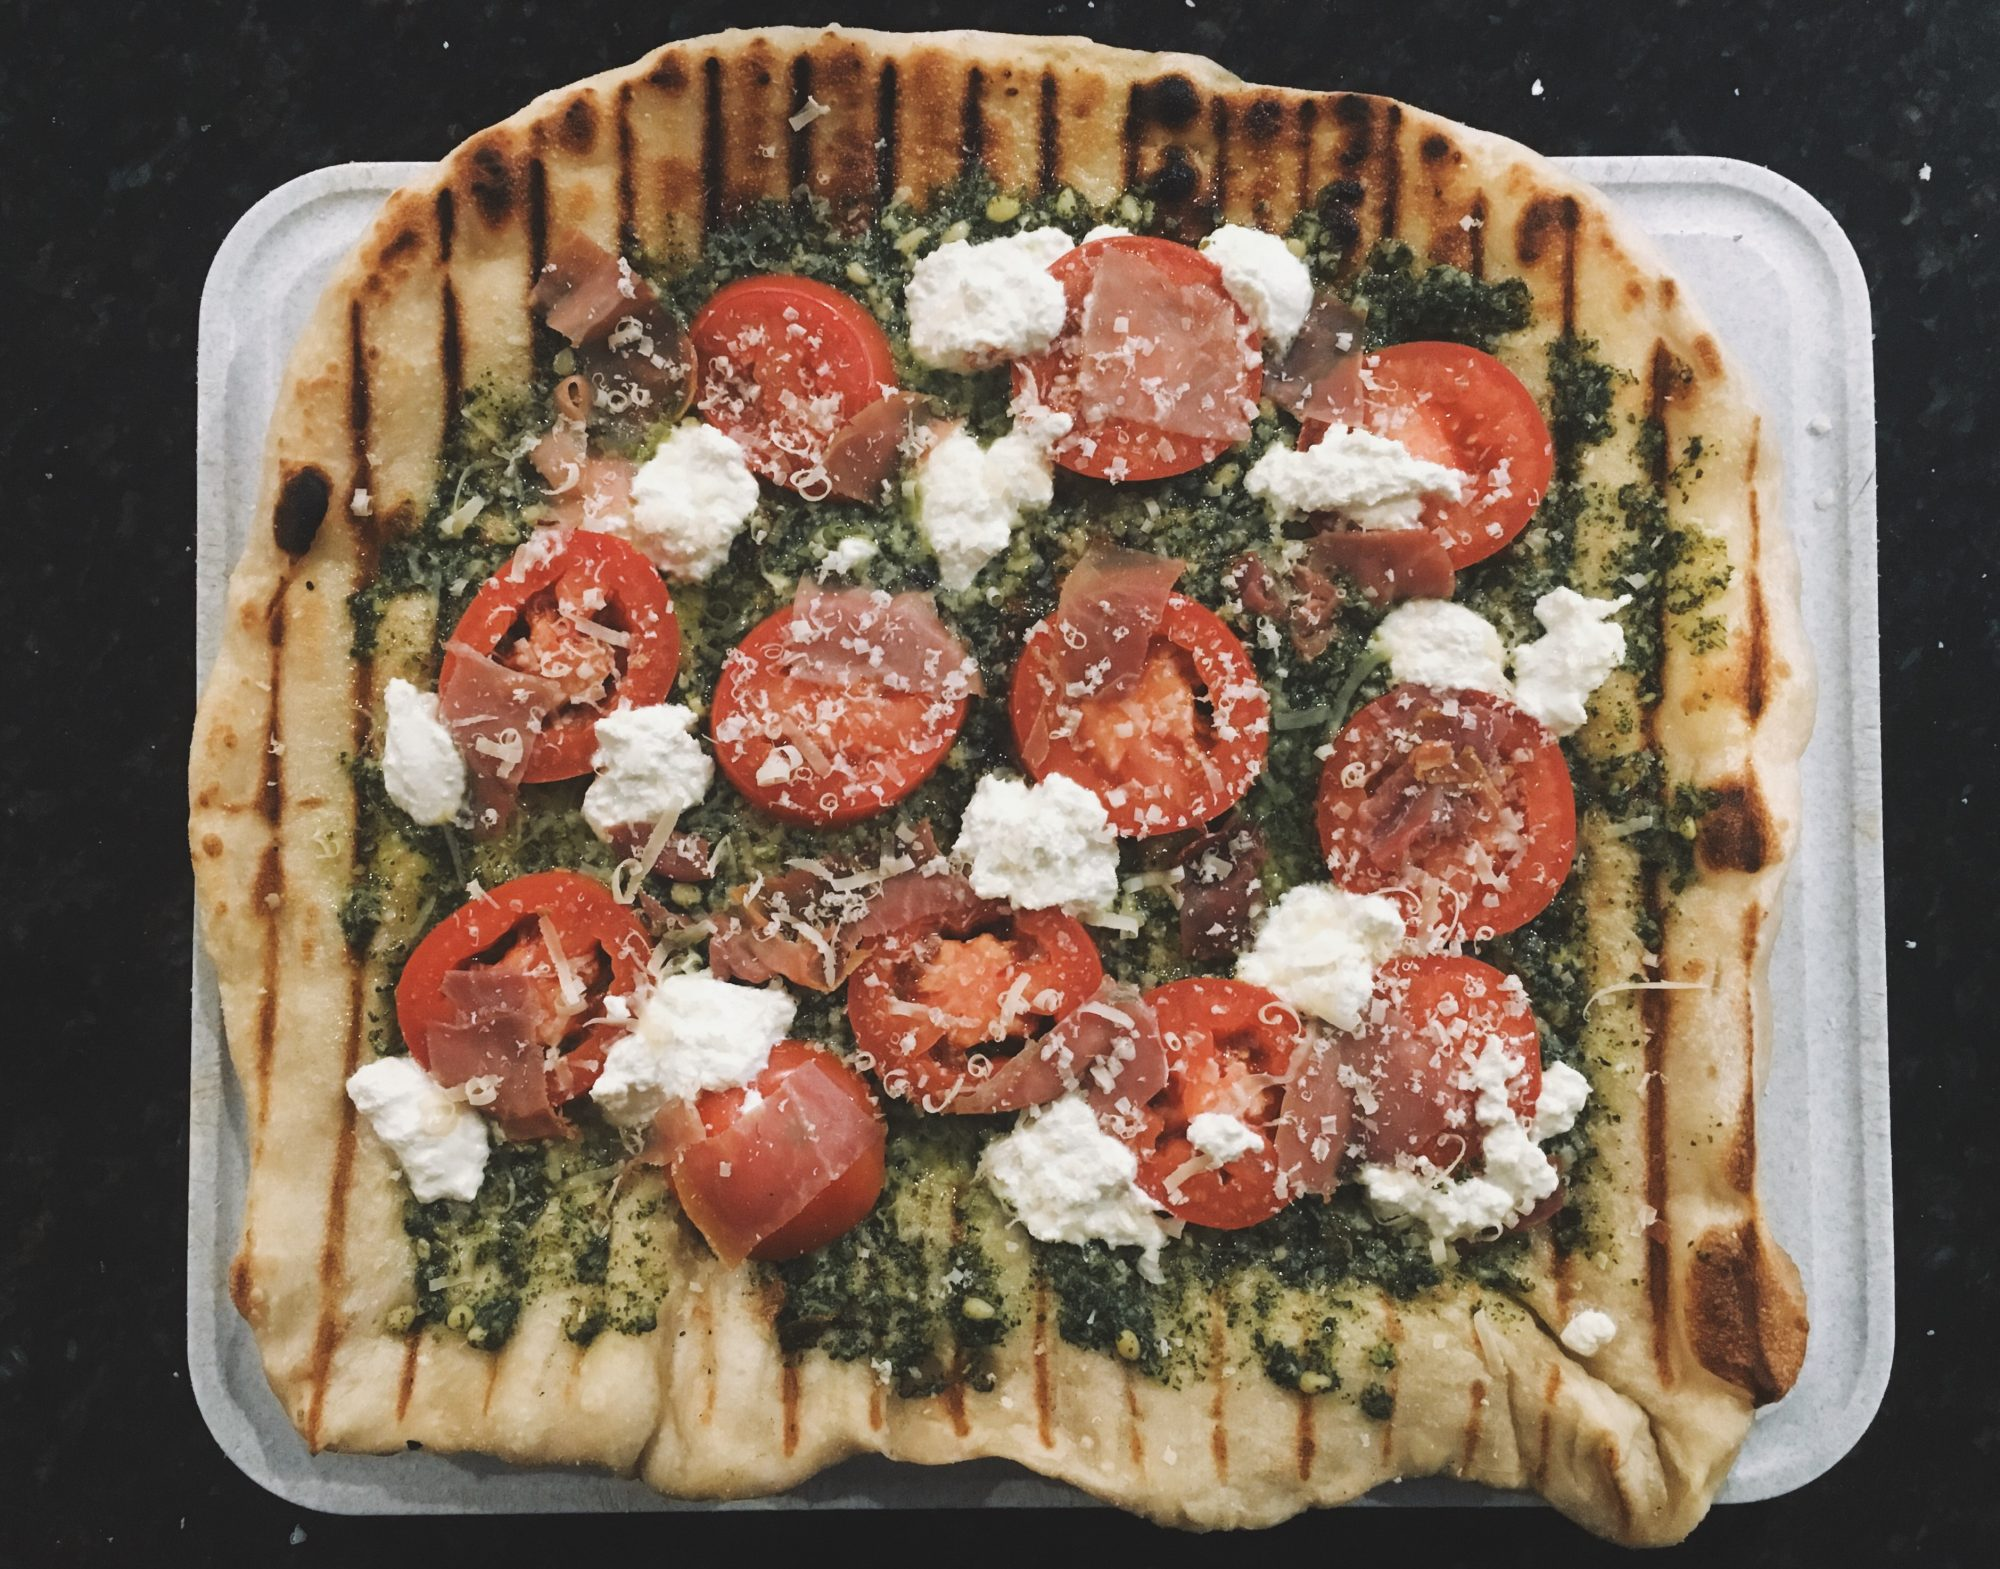 Grilled-Pizza-FT-3.jpg